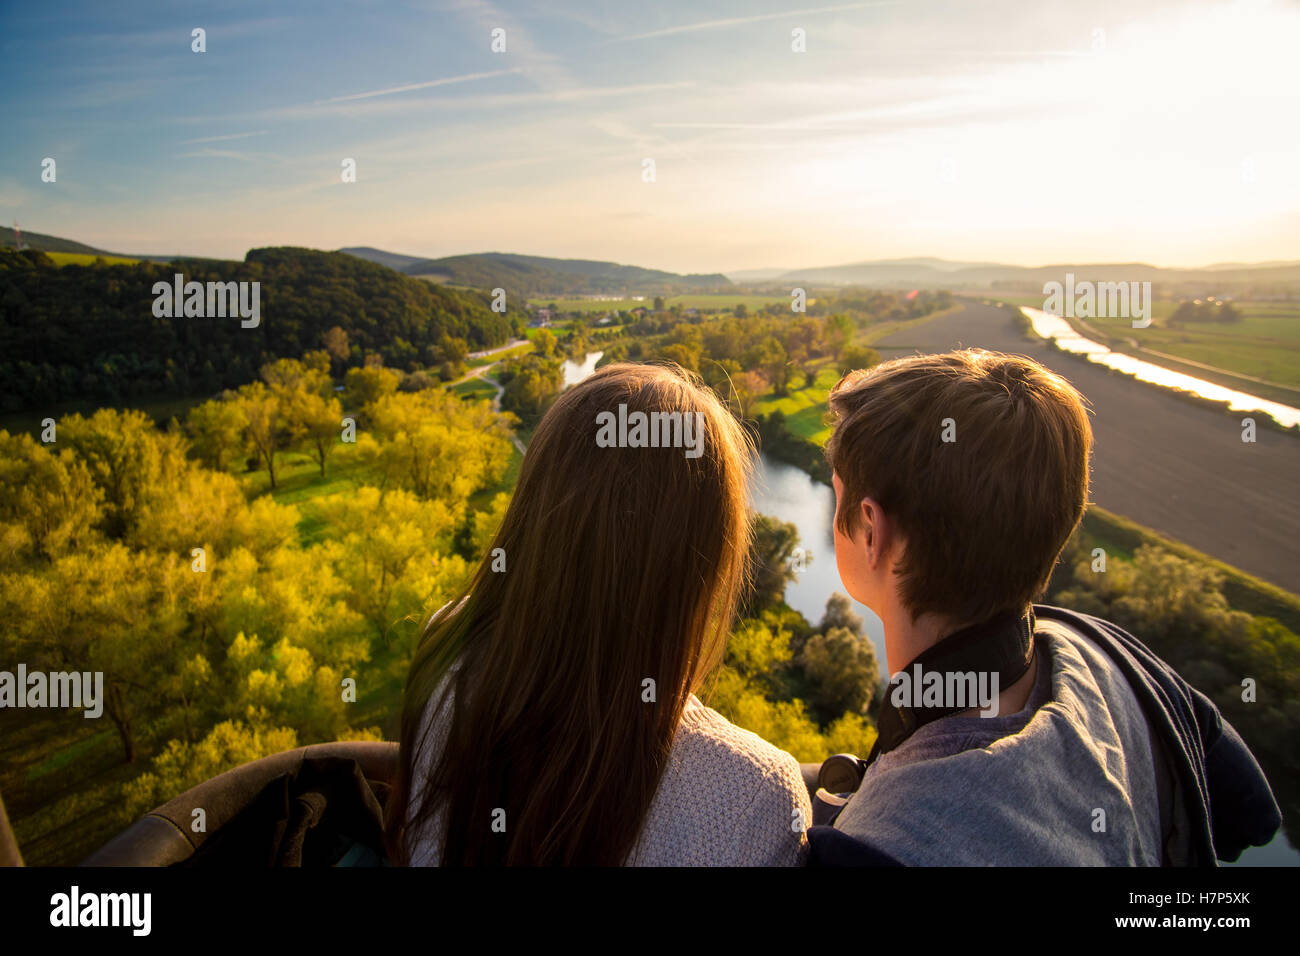 Couple enjoying view from hot air baloon - Stock Image